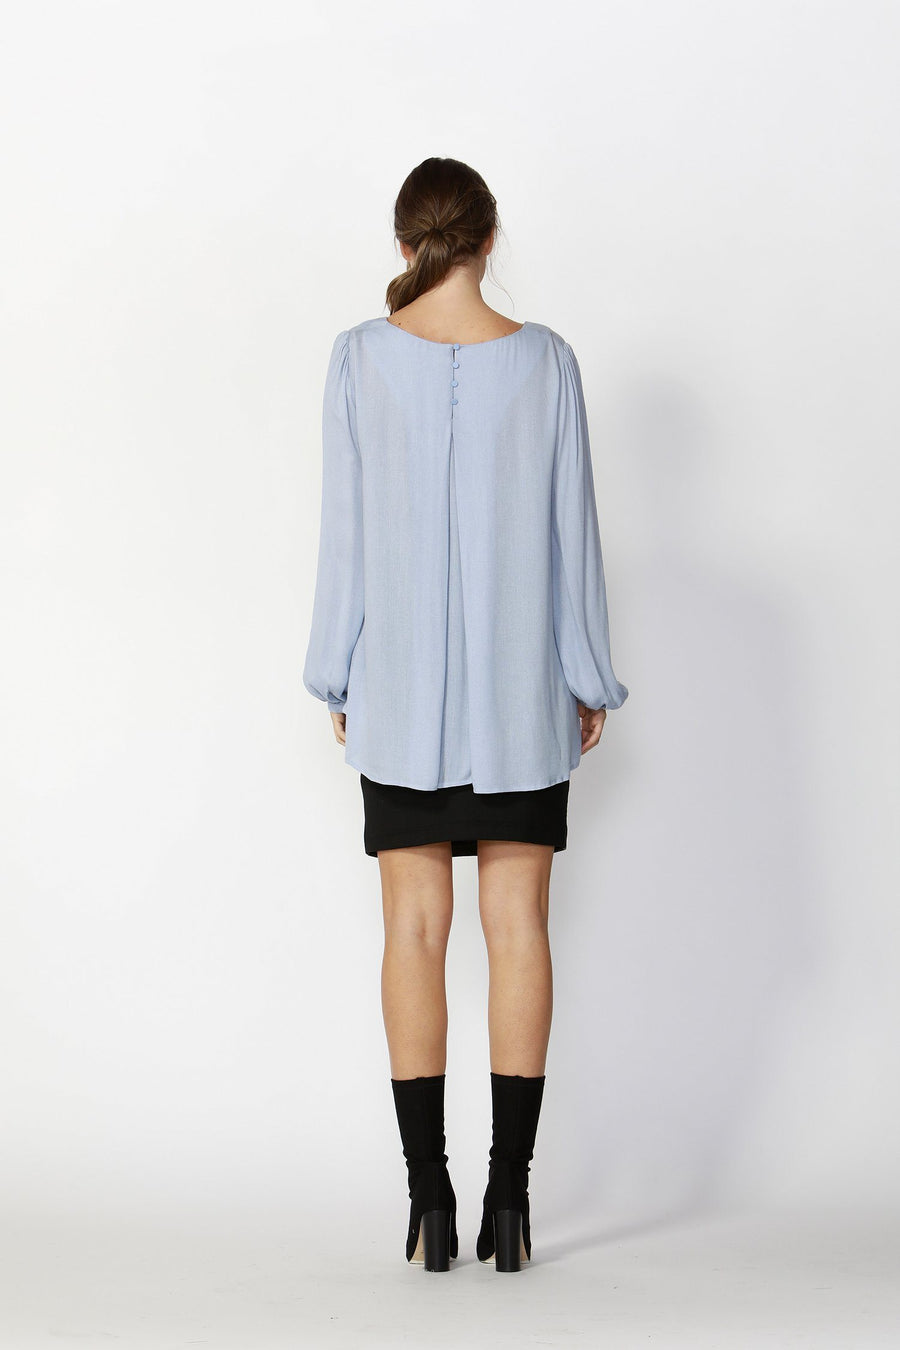 Secret Paradise Blouse in Pale Blue